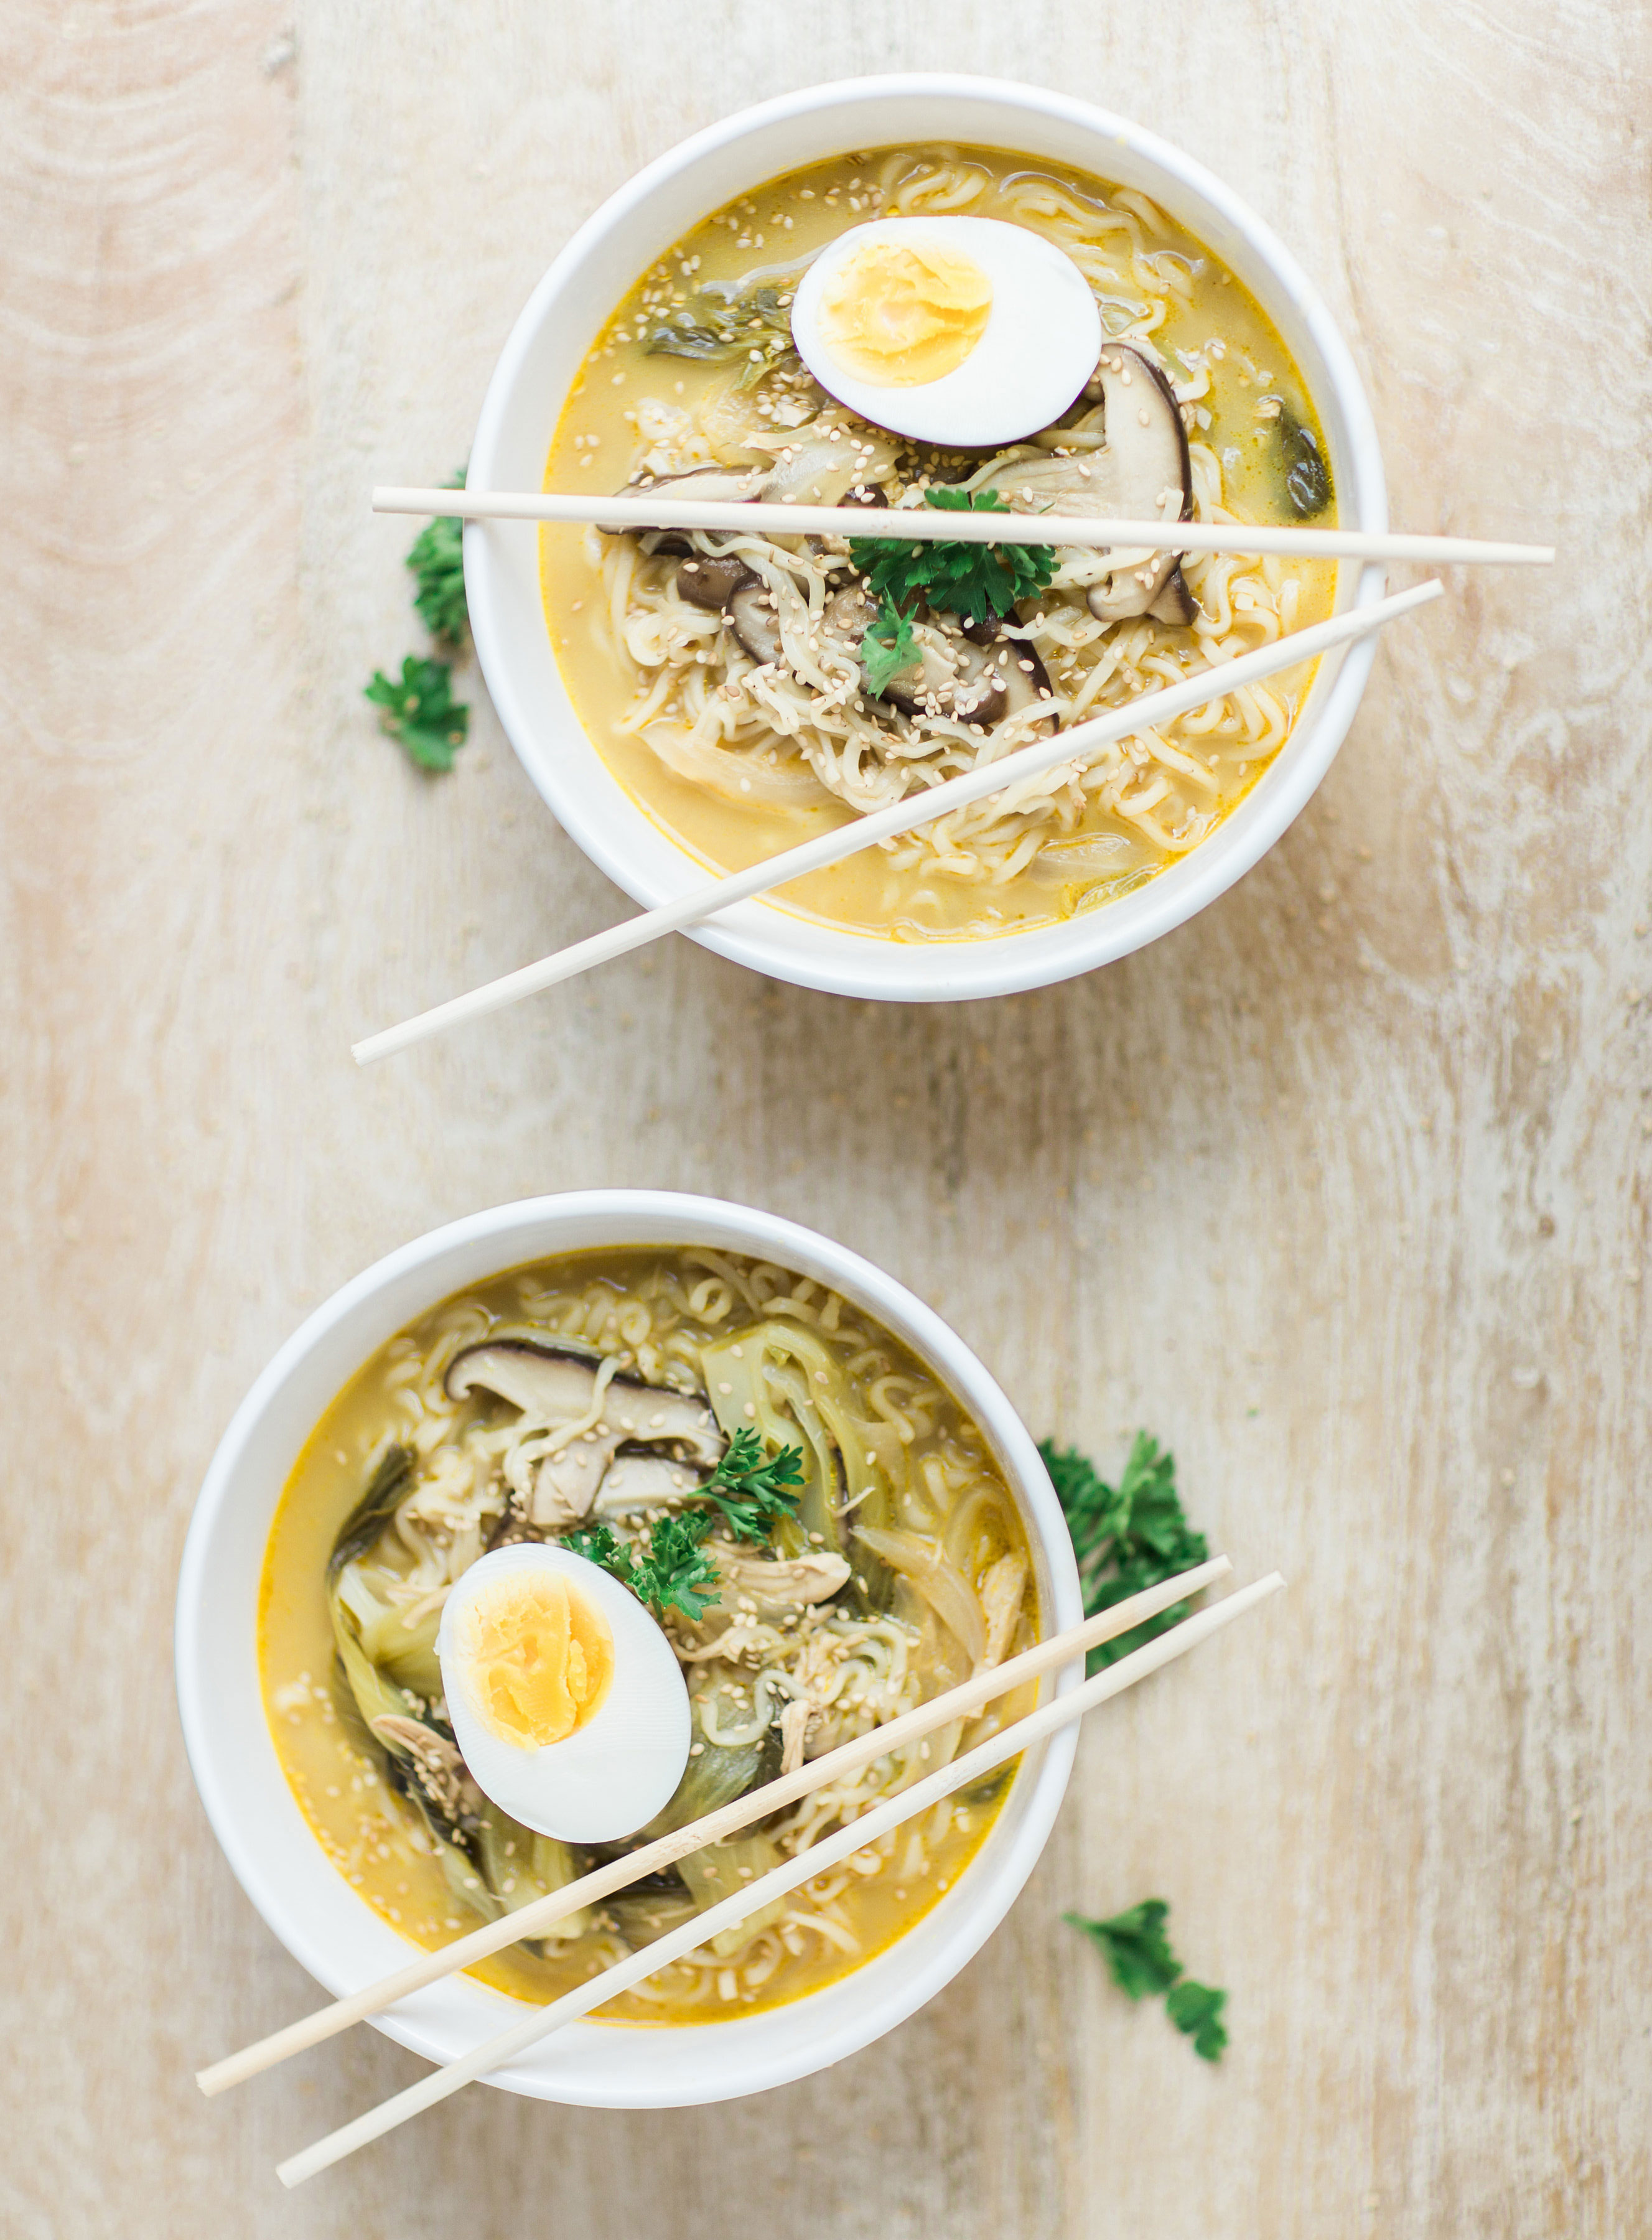 Simple Ramen Noodles Recipe in Under 15 Minutes